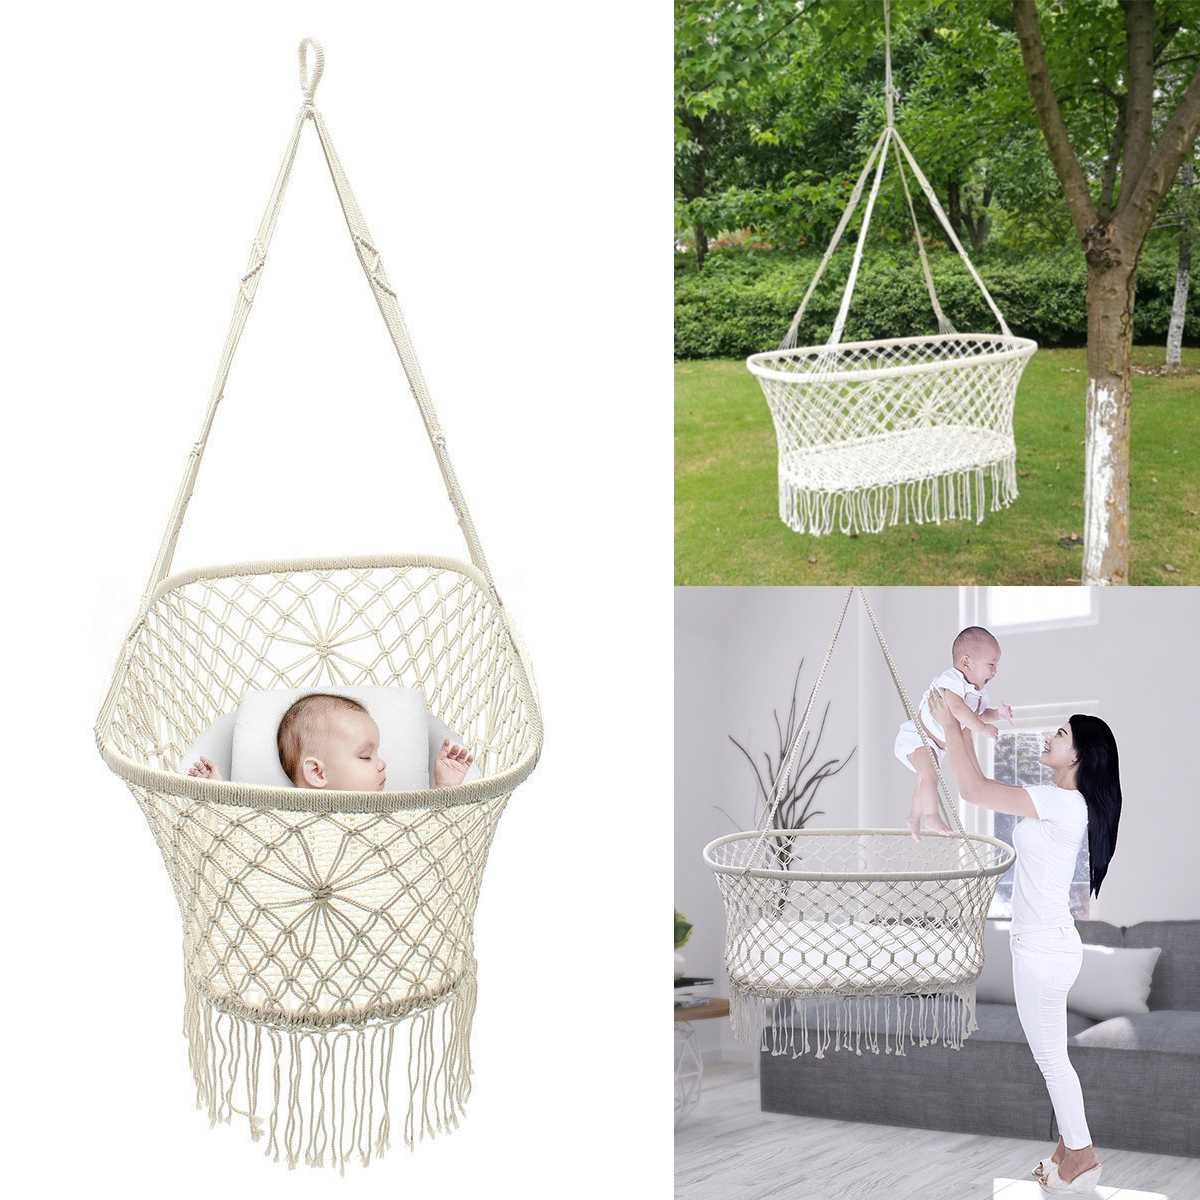 White Cotton Baby Garden Hanging Hammock Baby Cribs Cotton Woven Rope Swing Patio Chair Seat Bedding Baby Care 90*45*35cm